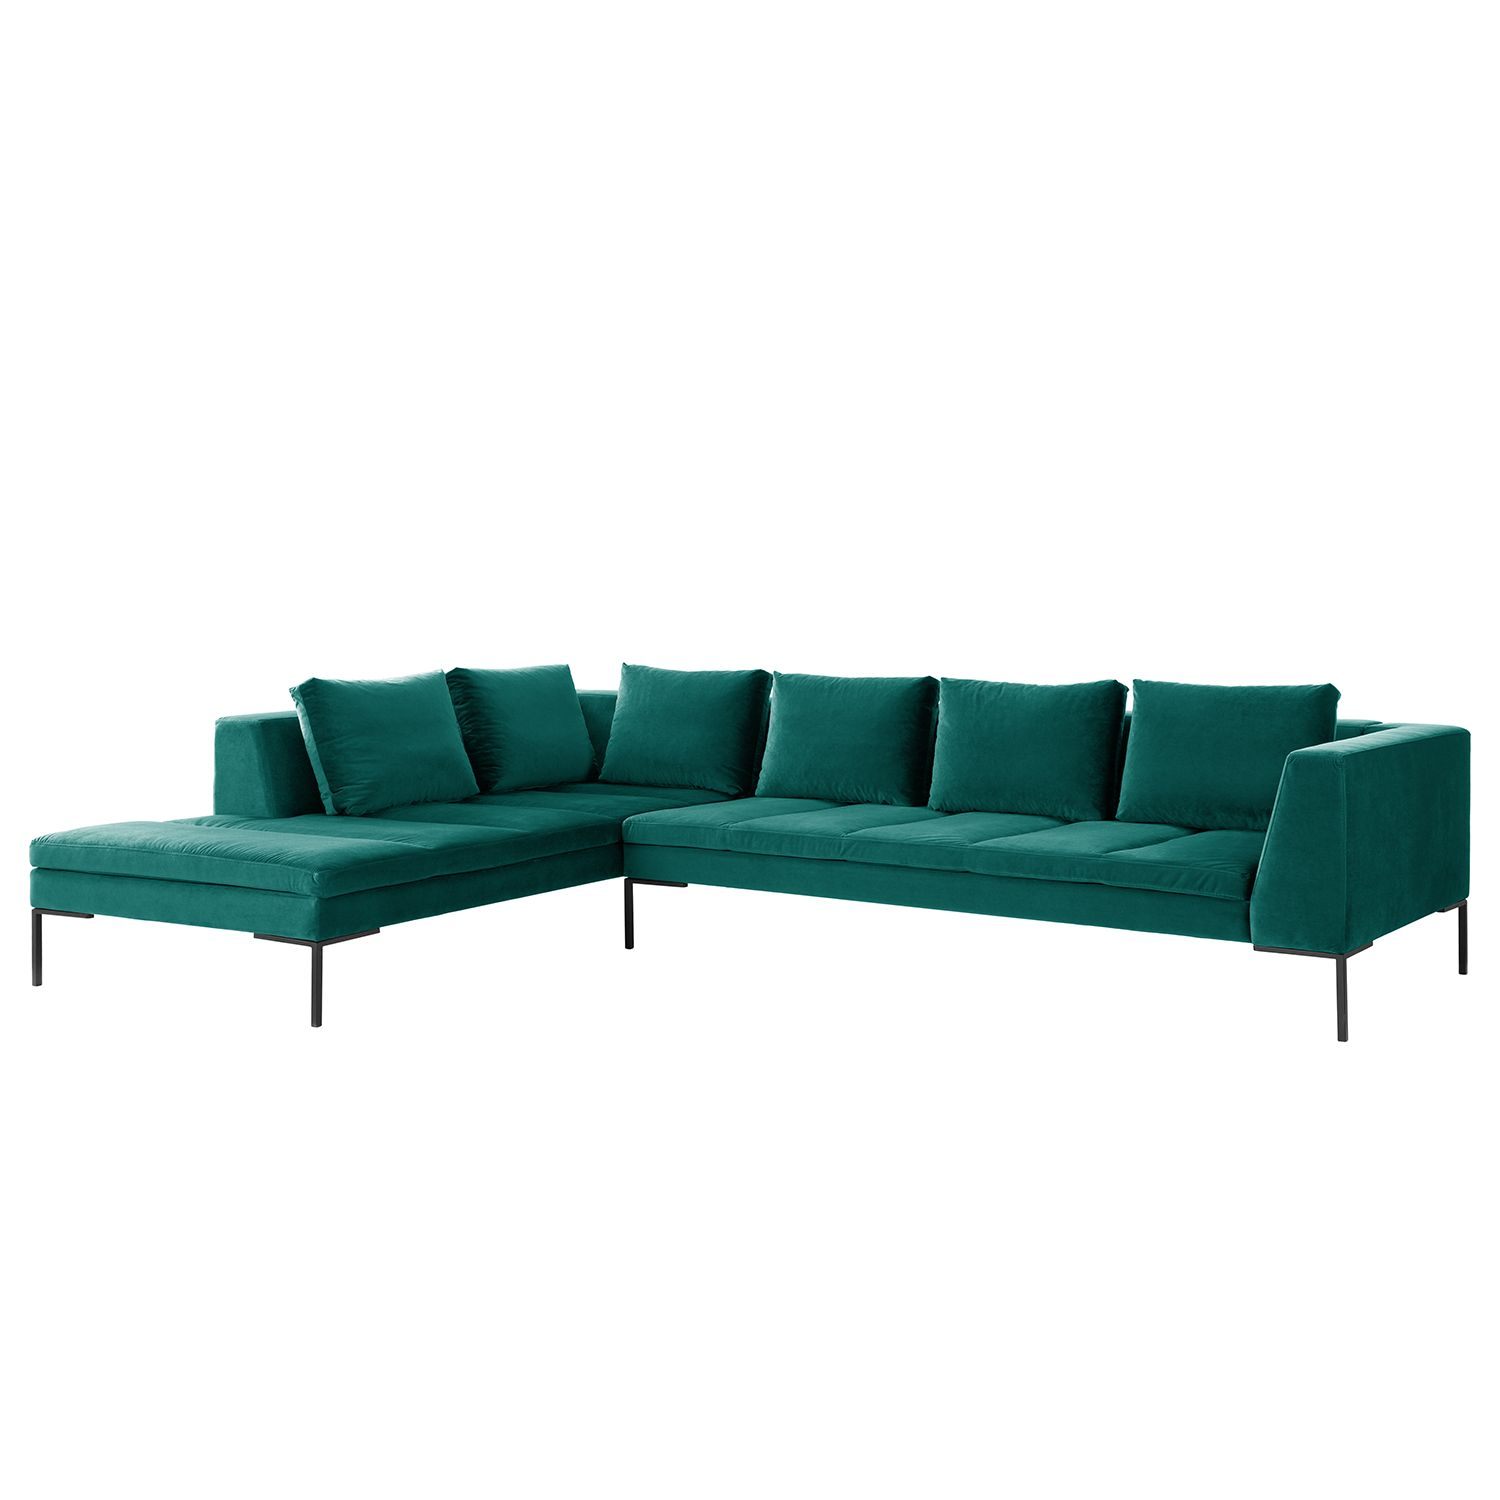 Ecksofa madison samt ottomane davorstehend links 319 for Sofa petrol samt